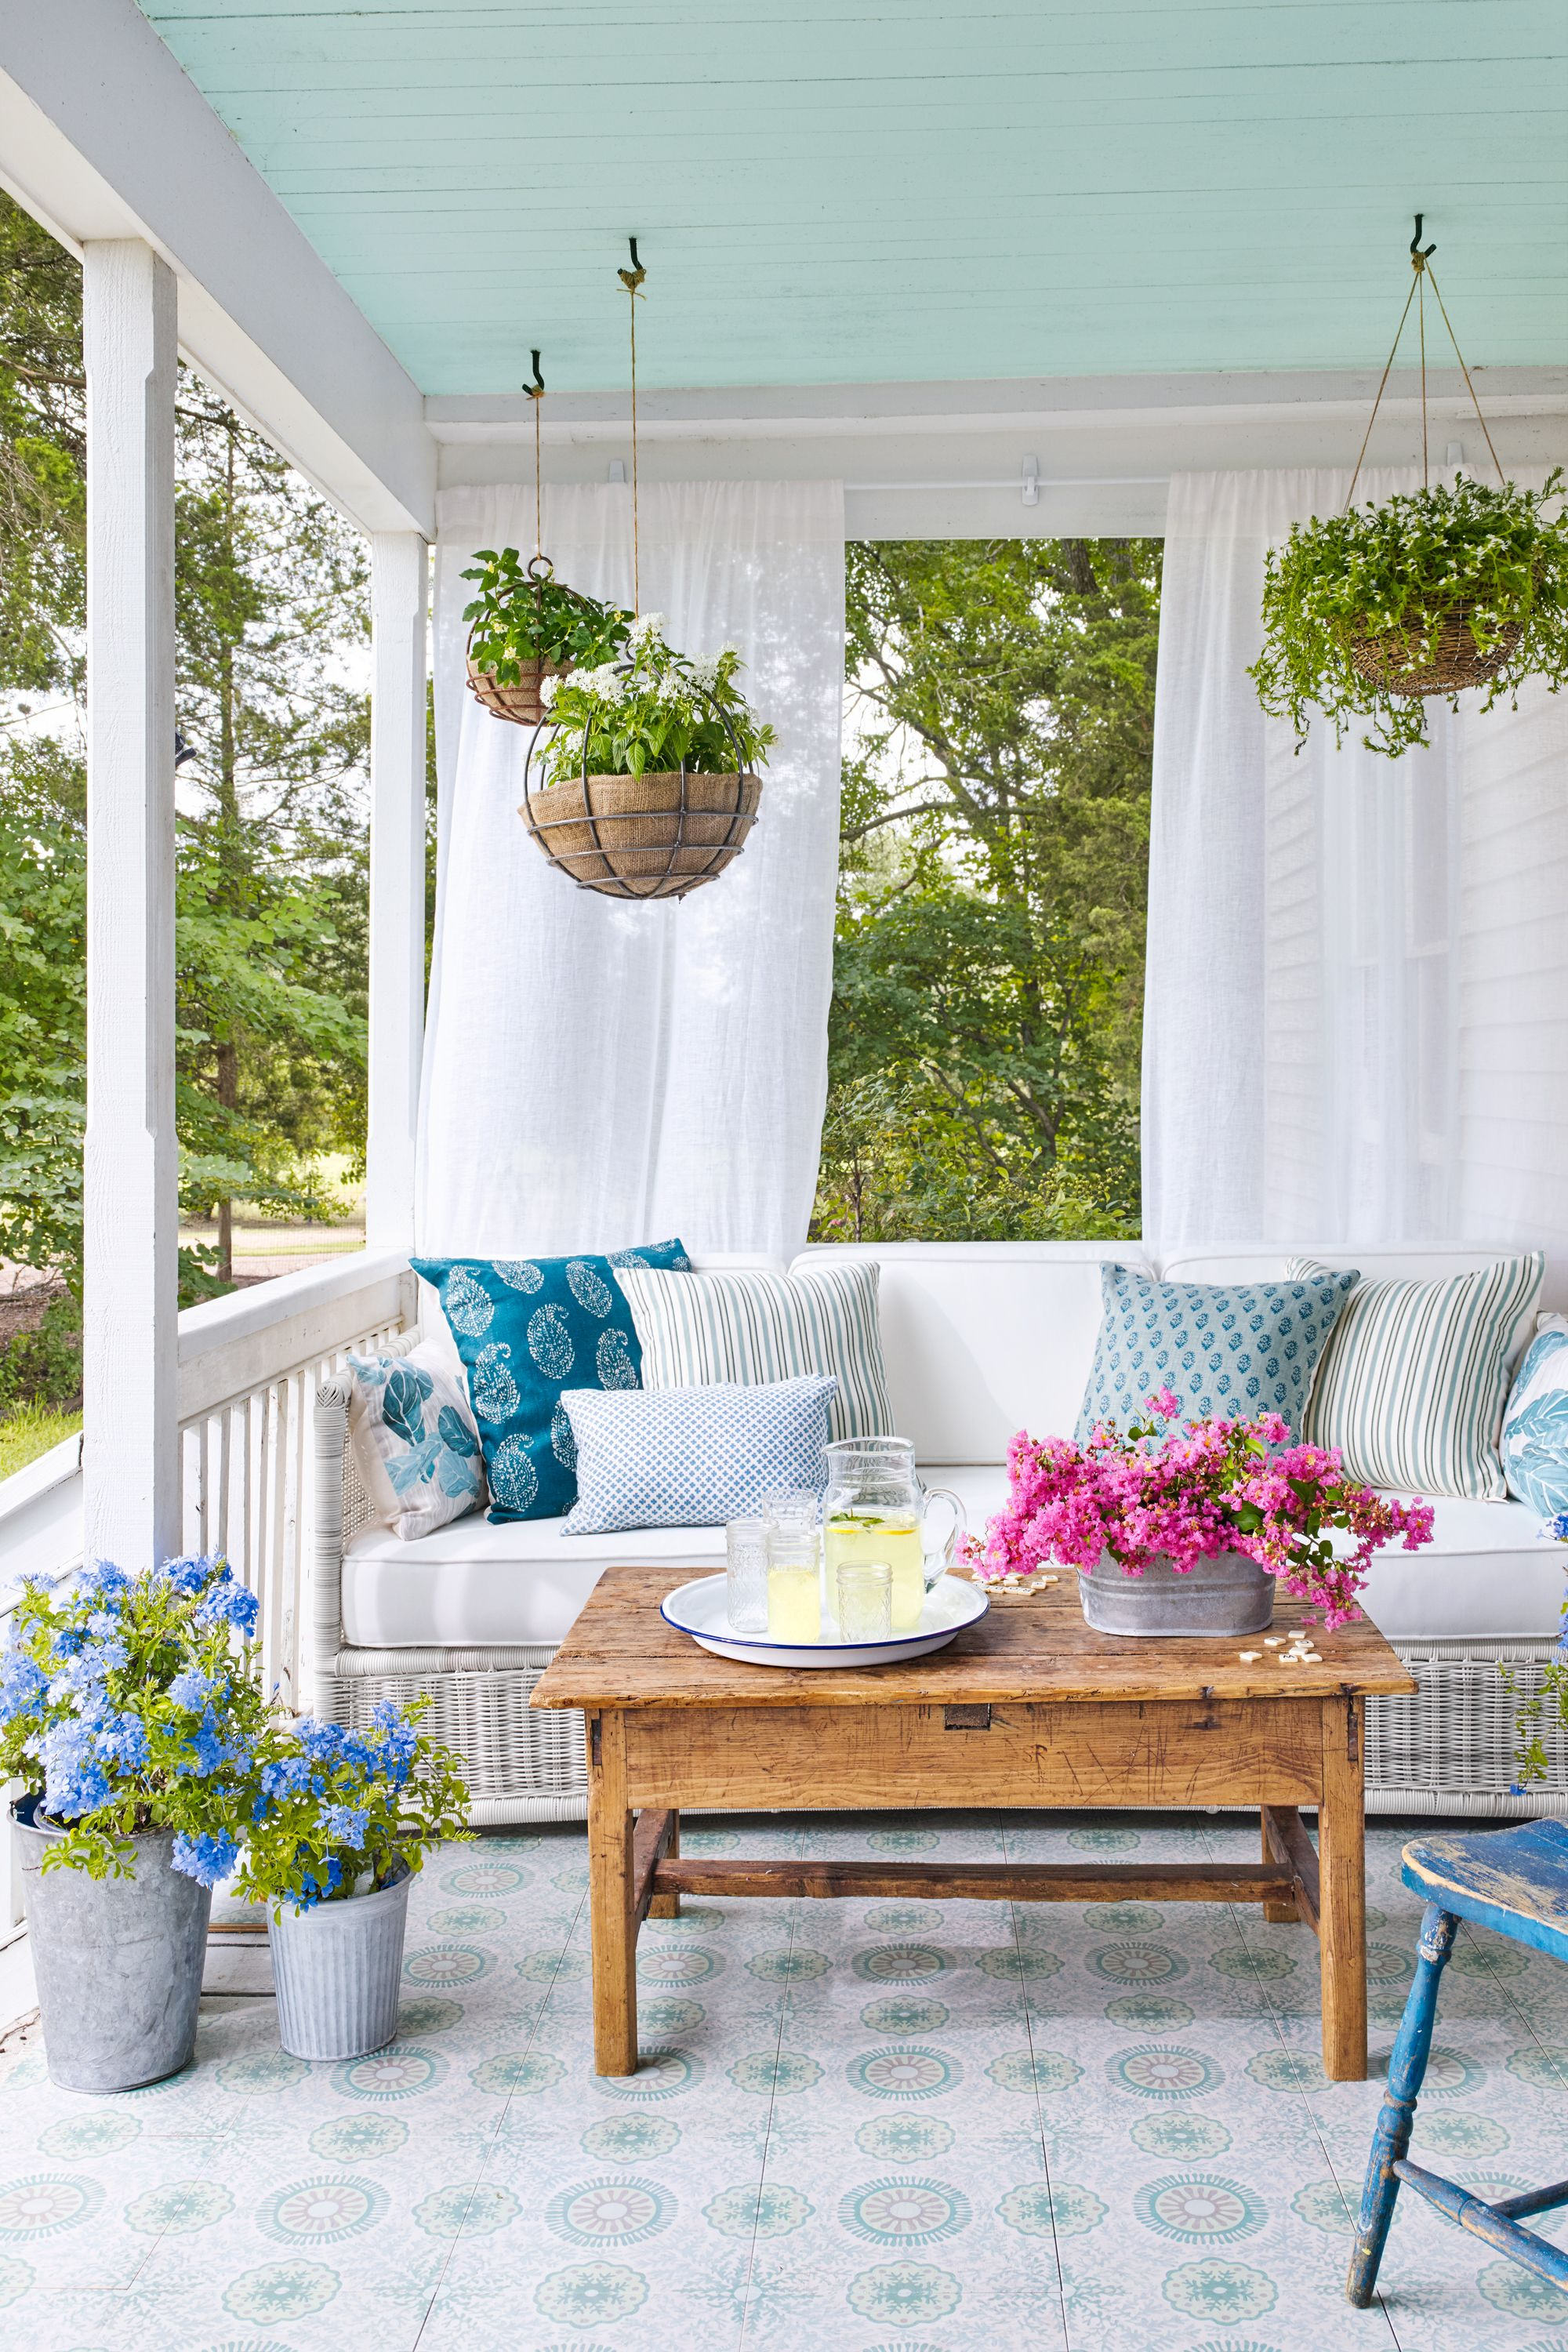 82 Best Front Porch Ideas Ideas For Front Porch And Patio Decorating